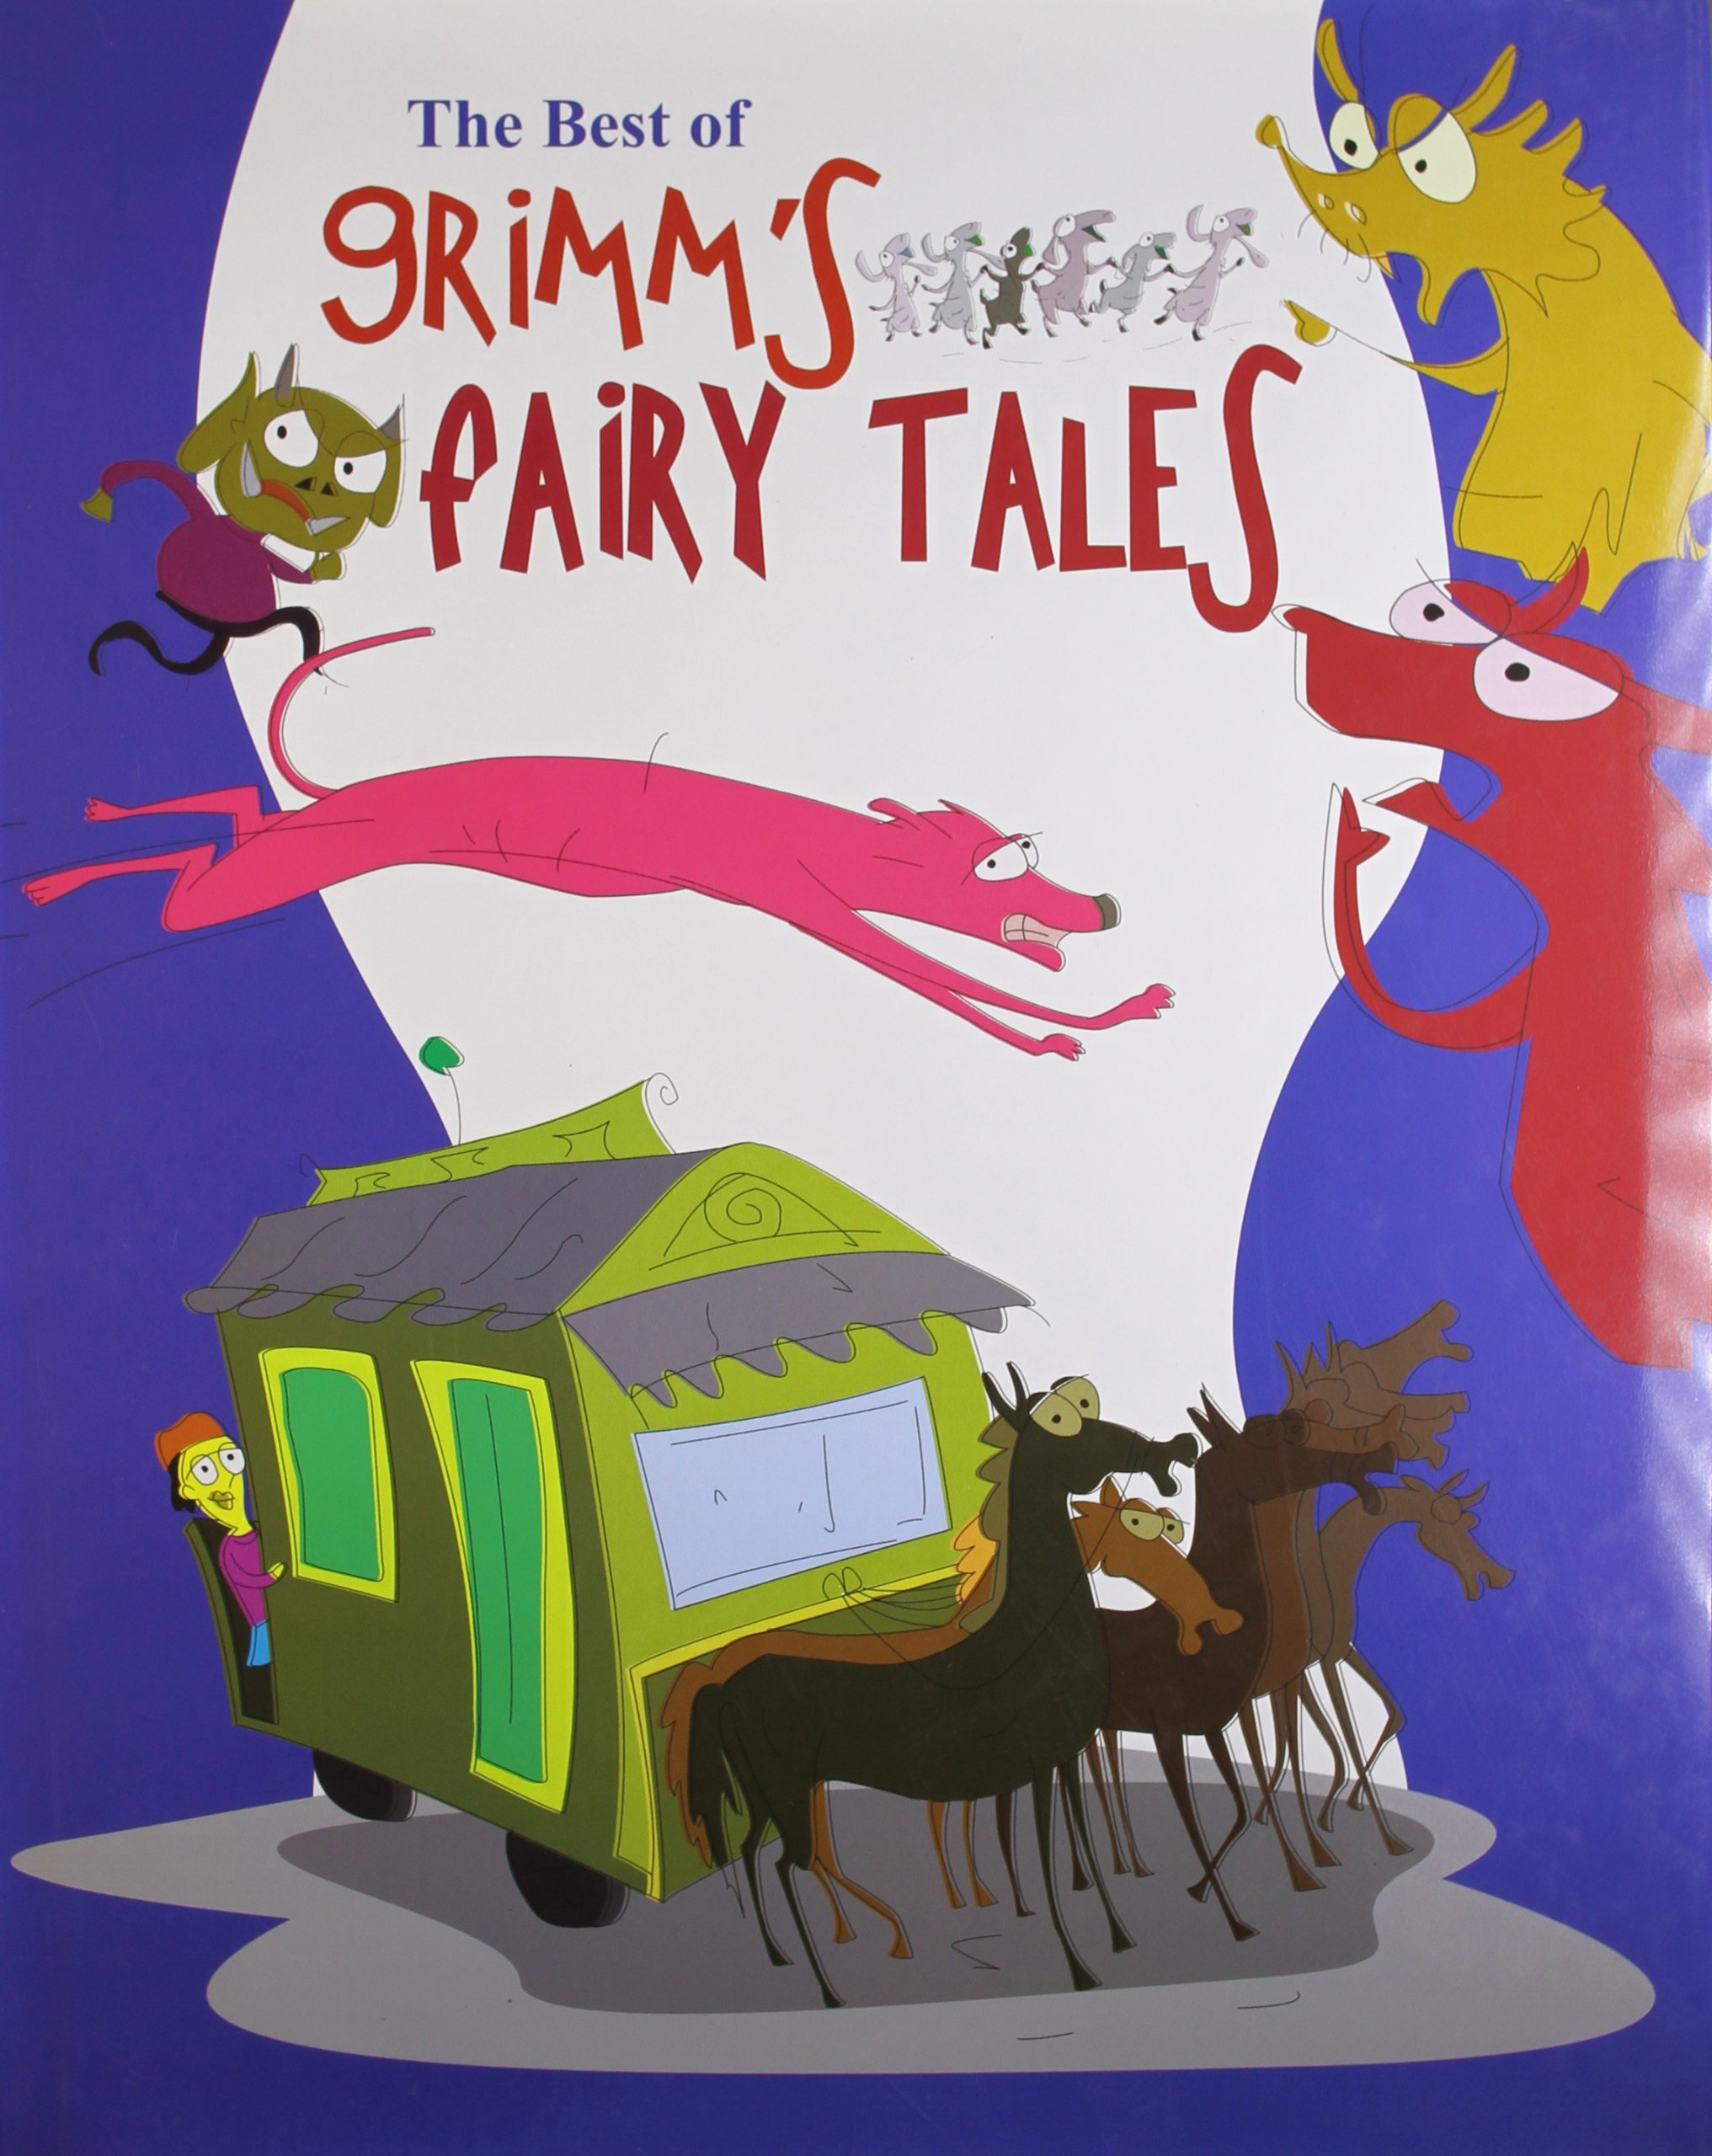 Grimms Fairy tales : The Best of Grimms Fairy tales